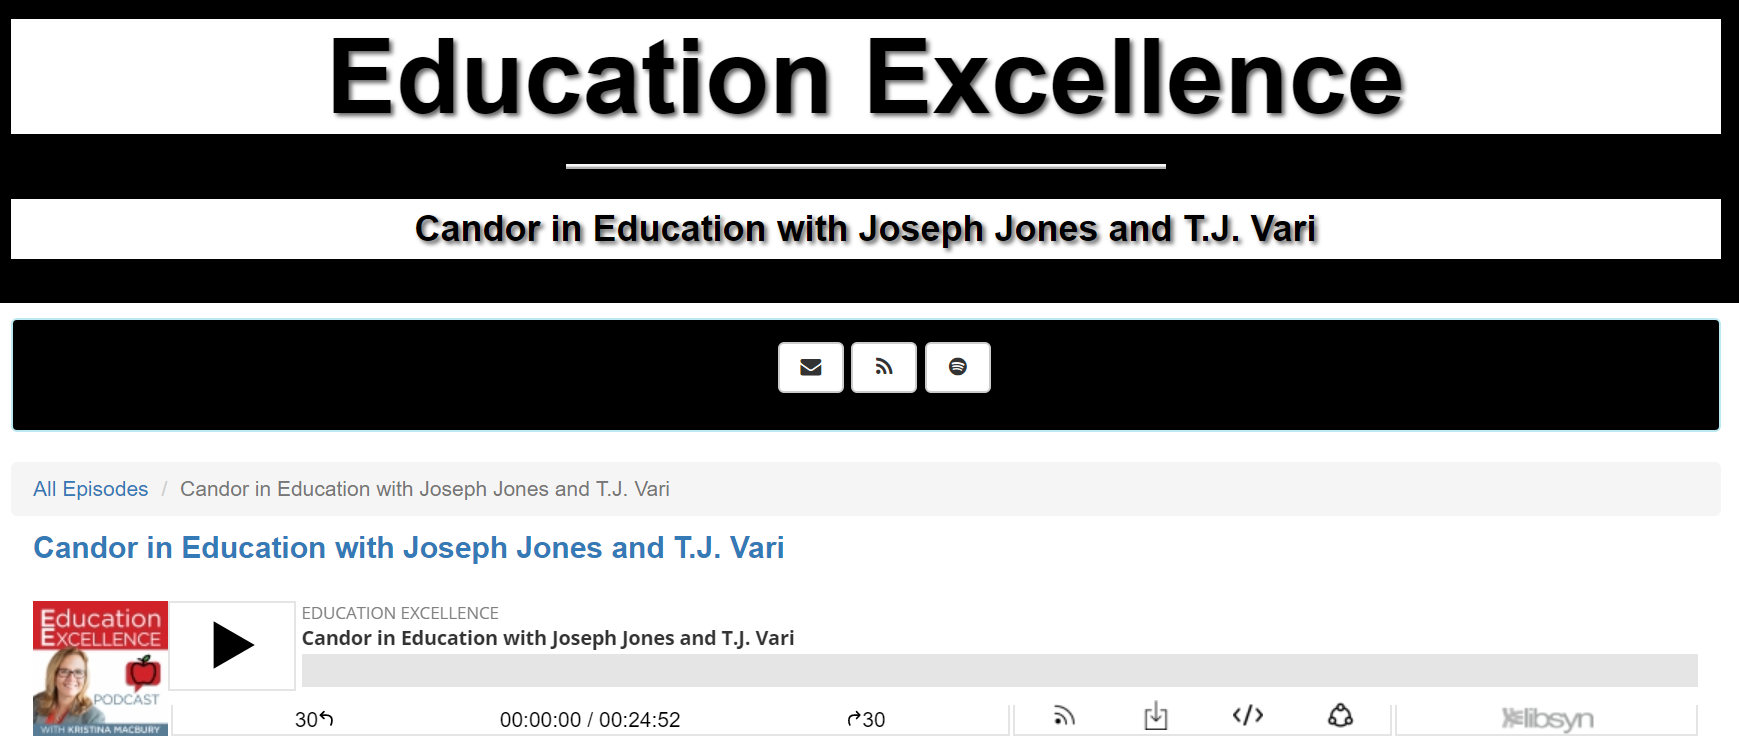 Education_Excellence_Episode_6